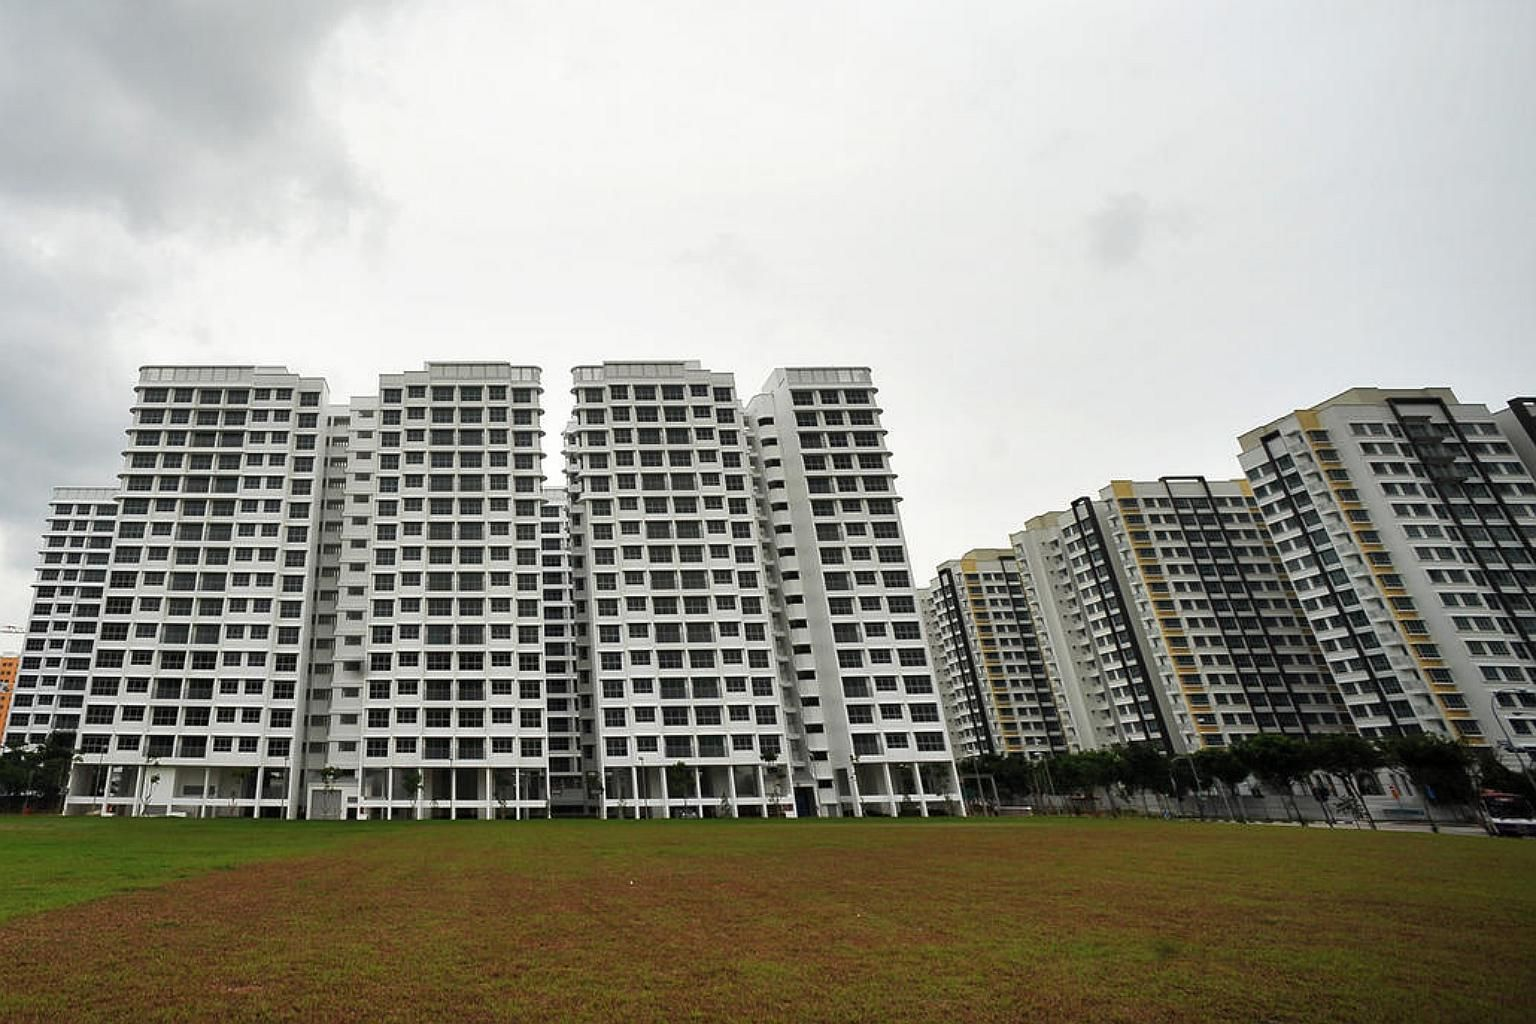 Hdb sales of balance - The Housing Development Board Hdb On Tuesday Launched 10 118 Flats For Sale Under The November 2016 Build To Order Bto And Sale Of Balance Flats Sbf